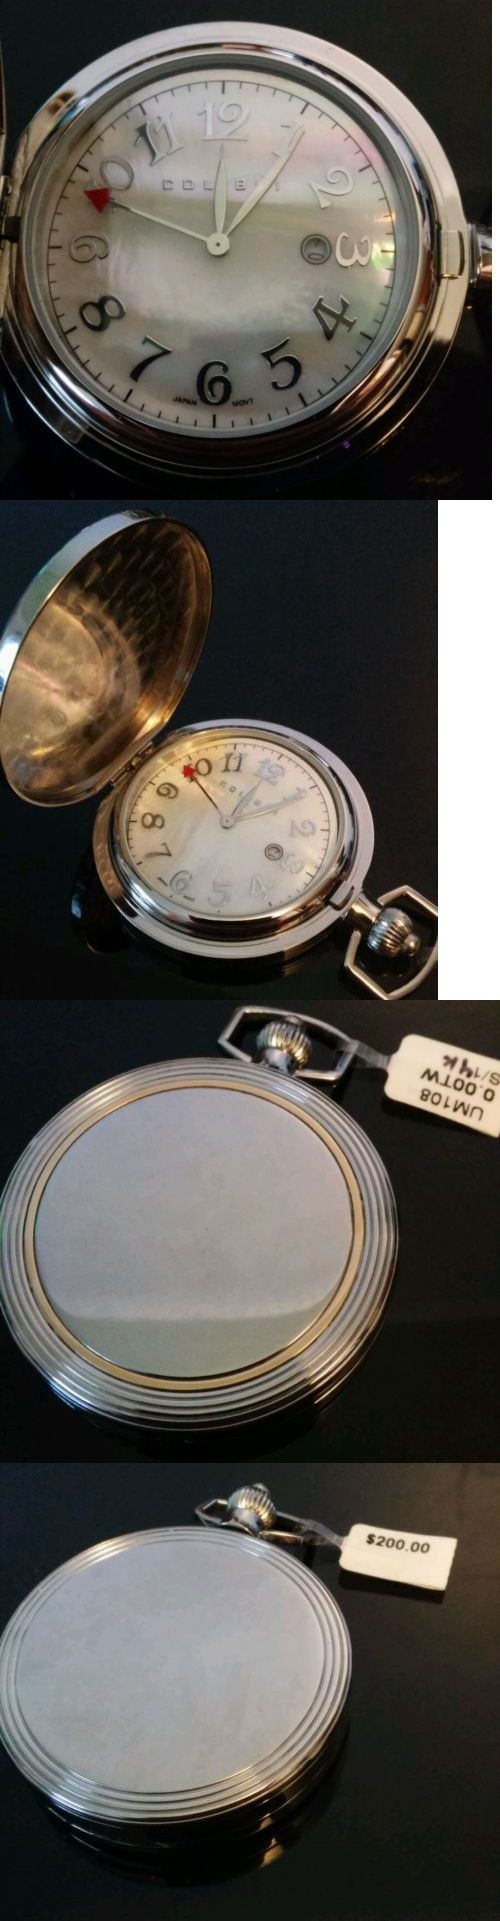 Other Pocket Watches 398: New Colibri Pocket Watch Mother Of Pearl With Date Display And Gmt -> BUY IT NOW ONLY: $100 on eBay!